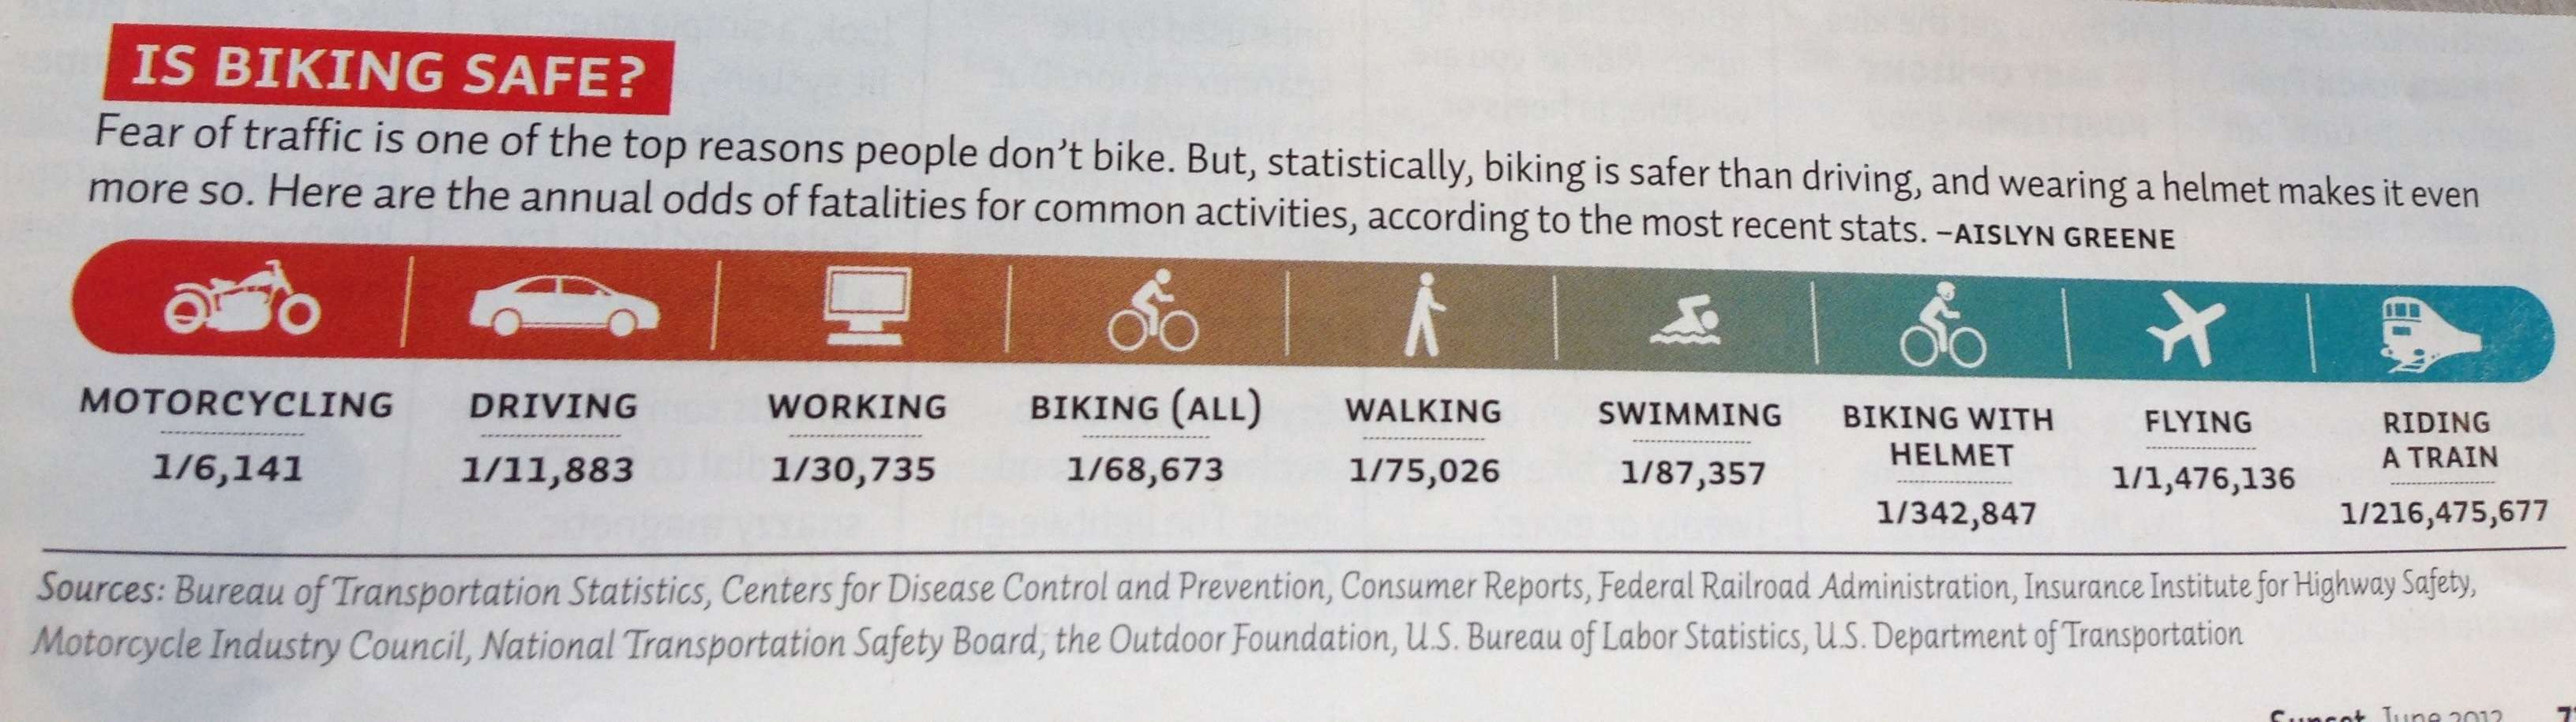 Accident rates among 9 activities including cycling: